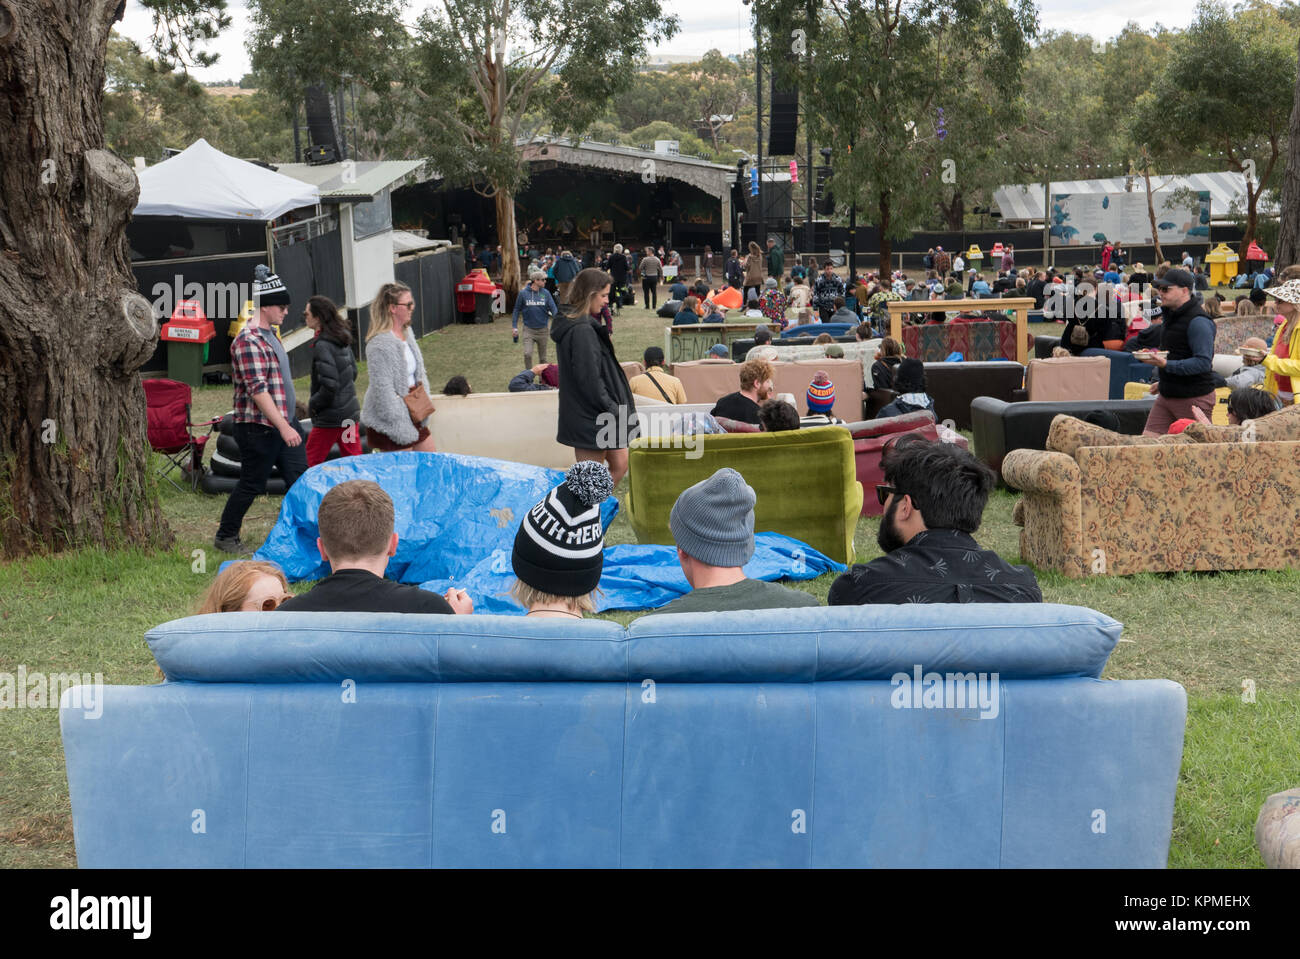 Young Australians sitting on couches they've decorated and brought to the Meredith Music Festival in Meredith - Stock Image